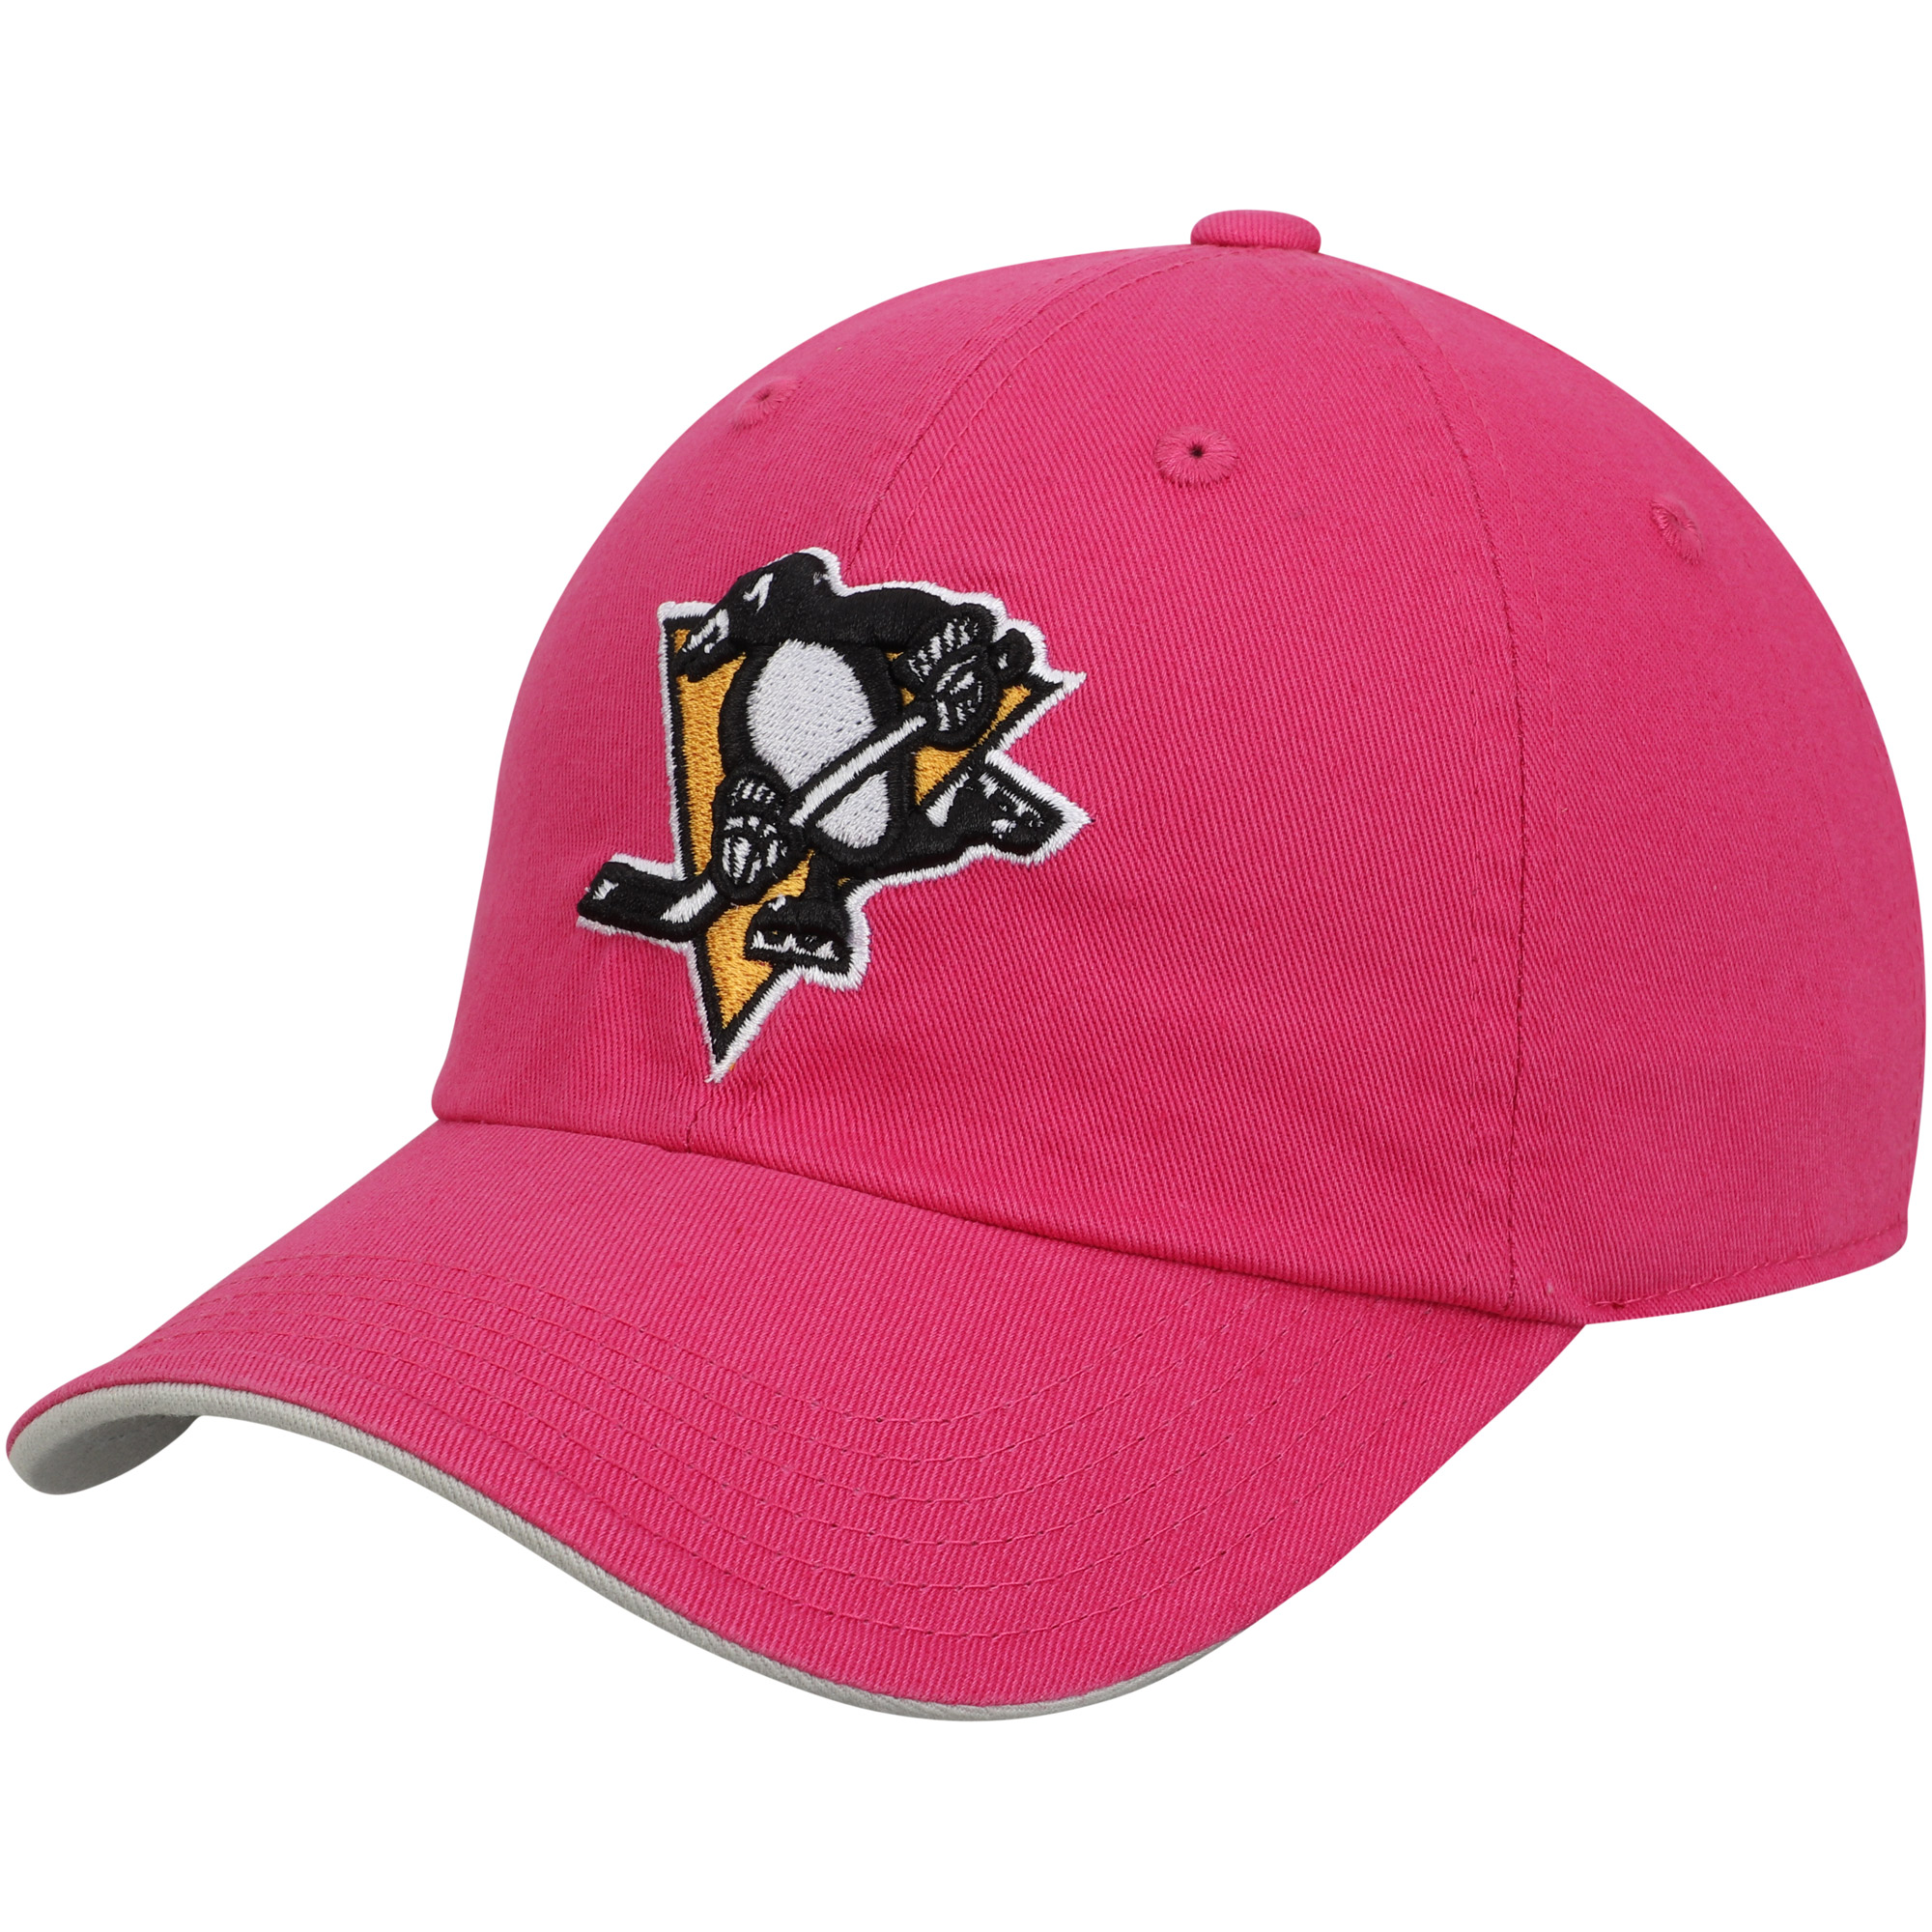 Pittsburgh Penguins Girls Youth Slouch Adjustable Hat - Pink - OSFA